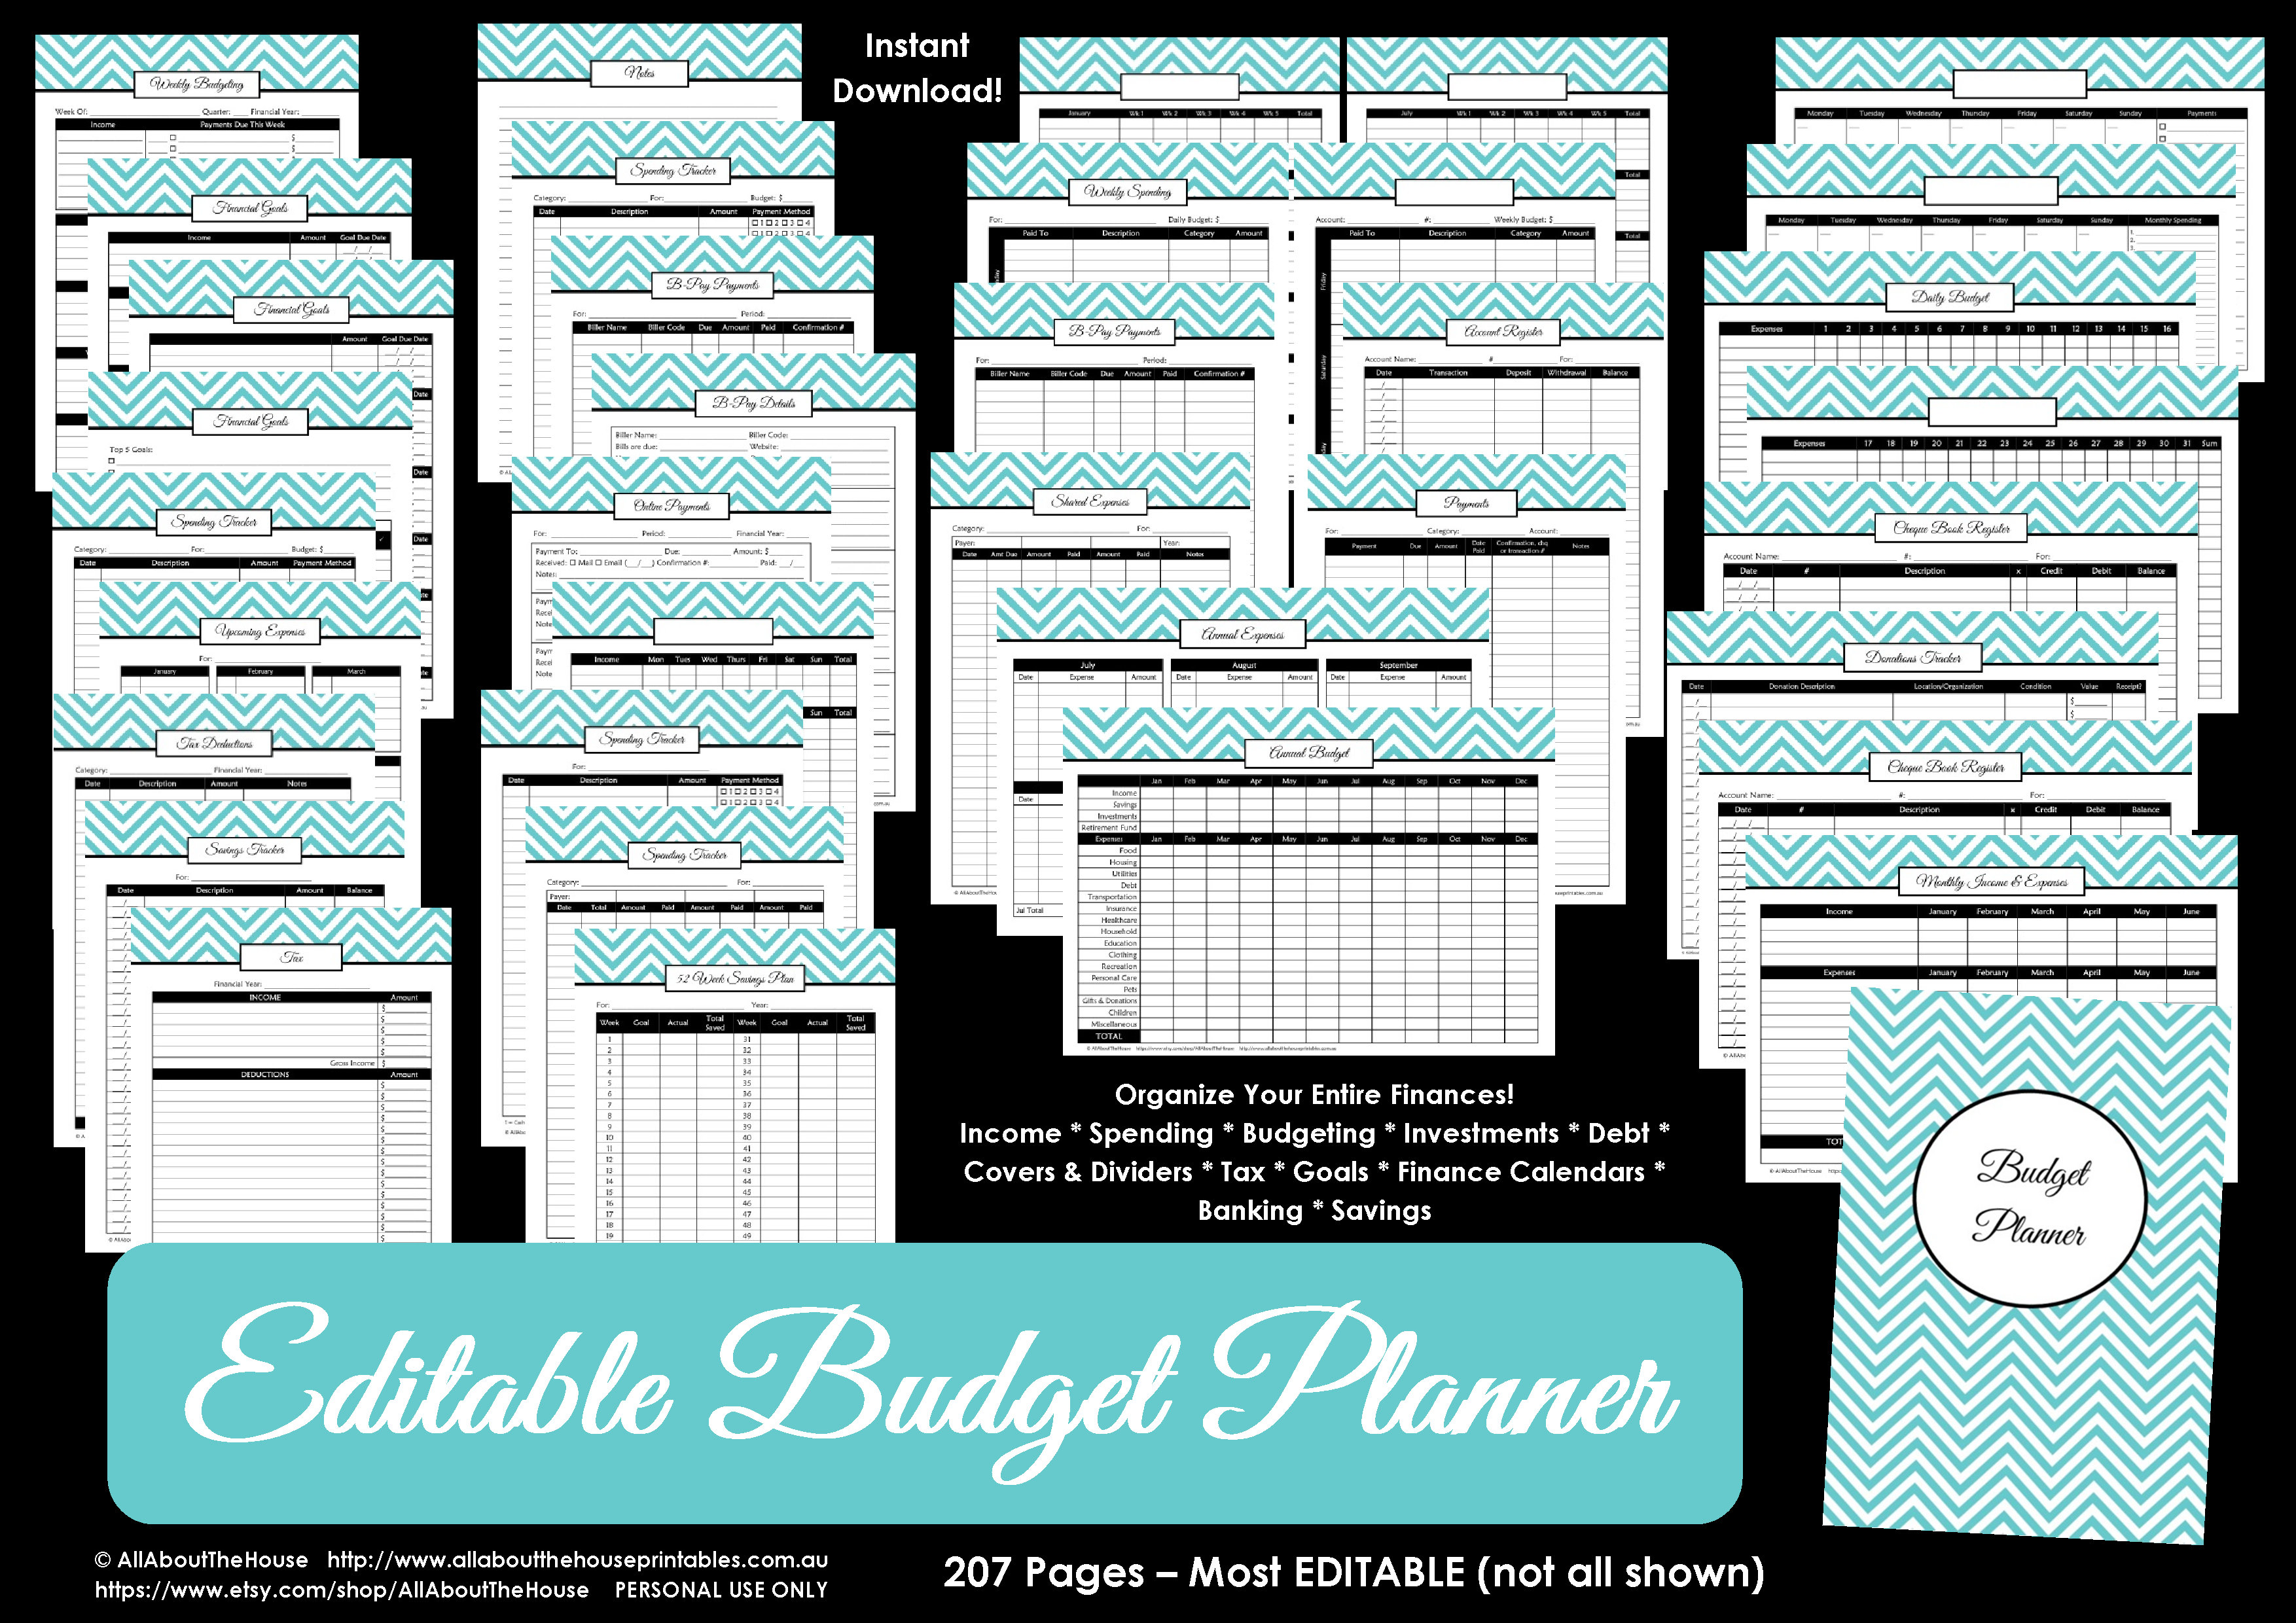 Budget Printable Allaboutthehouse Printables